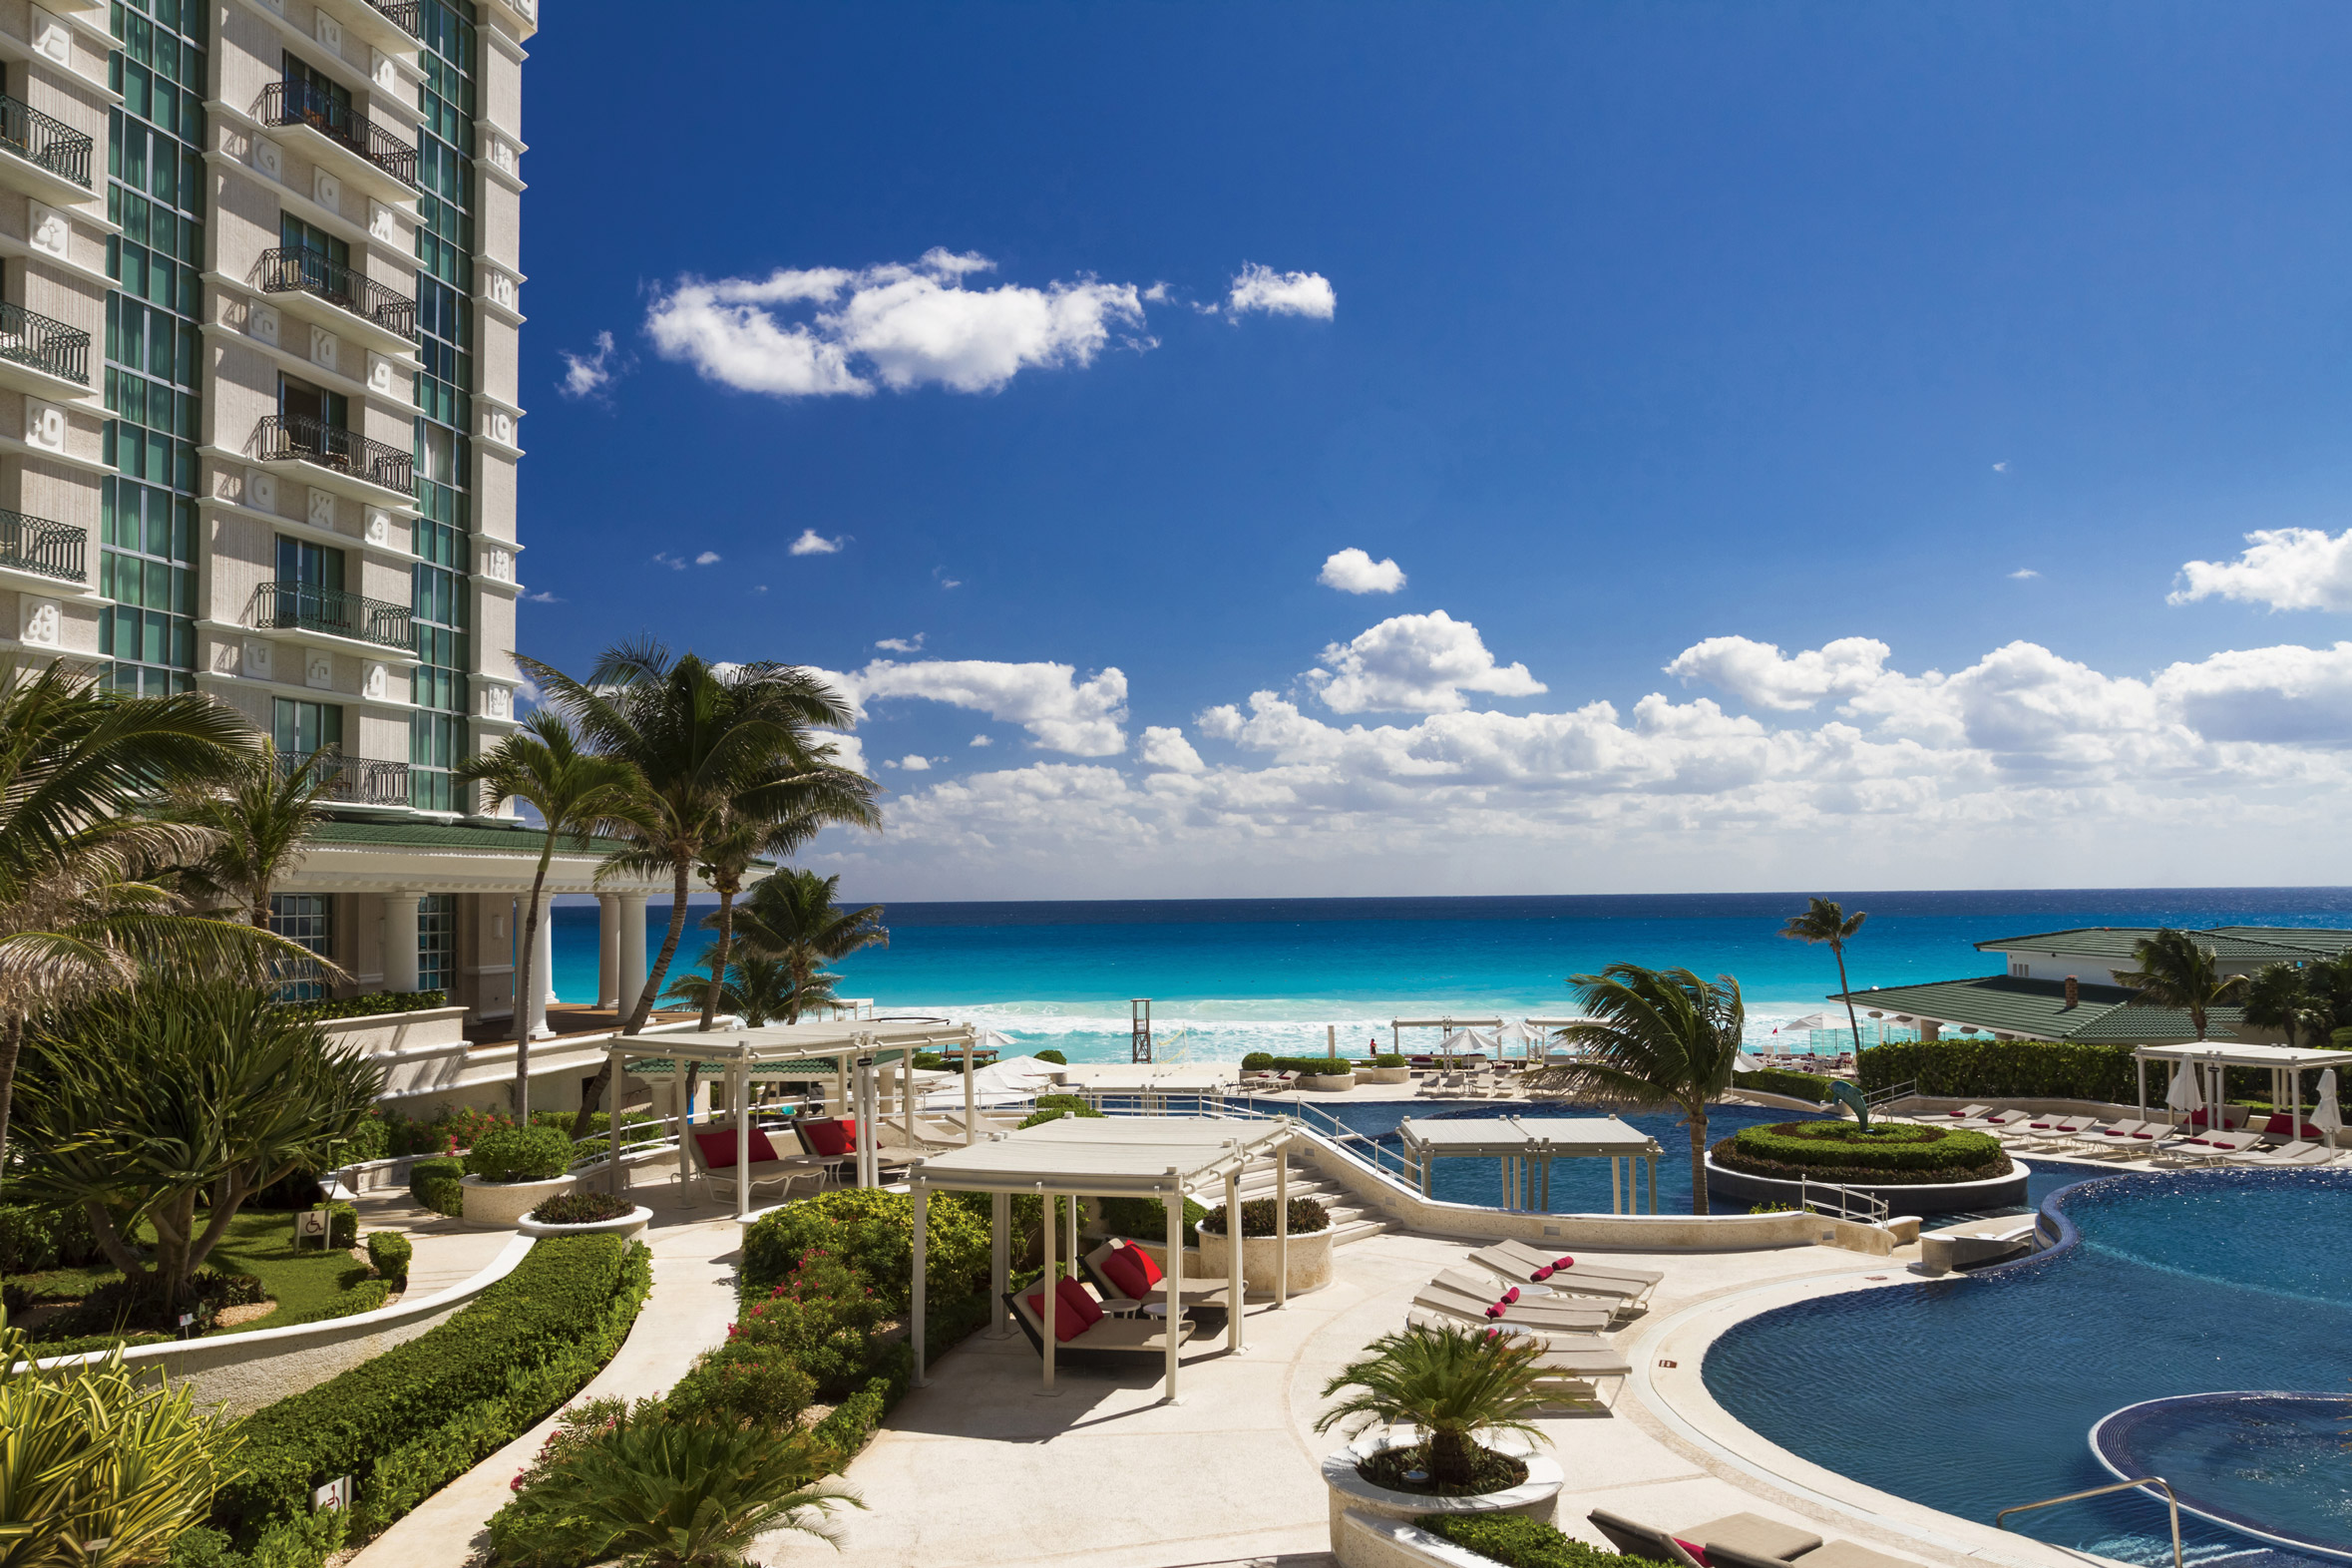 Sandos Cancun Lifestyle Resort  Cancun  Transat